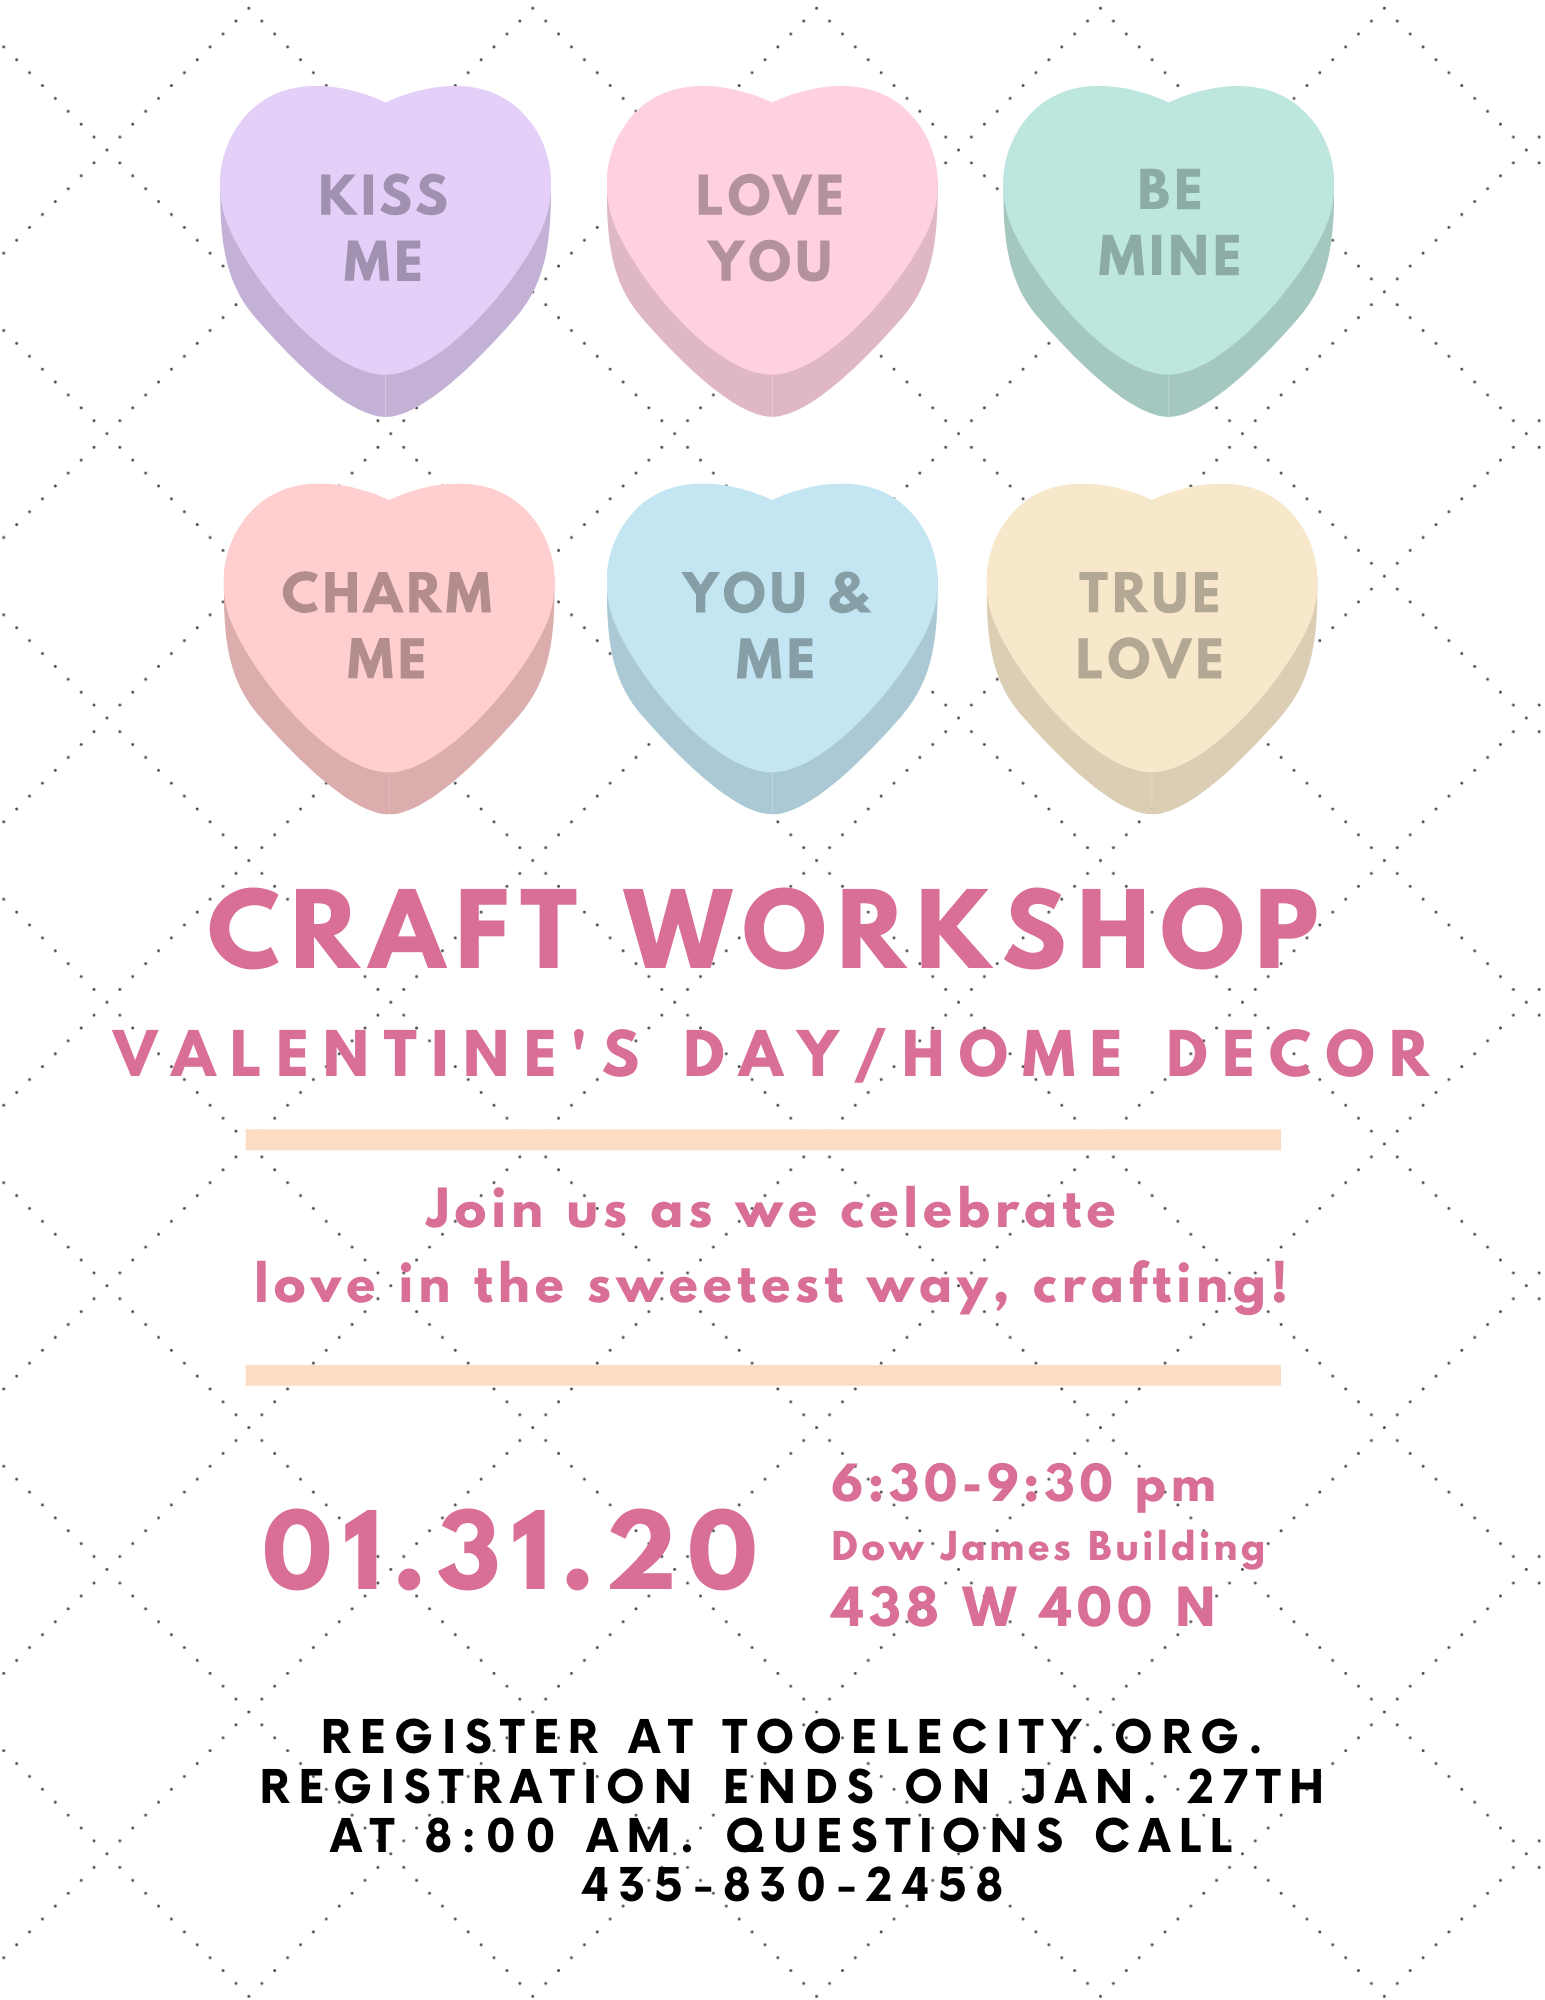 Valentine Craft Workshop - January 31, 2020